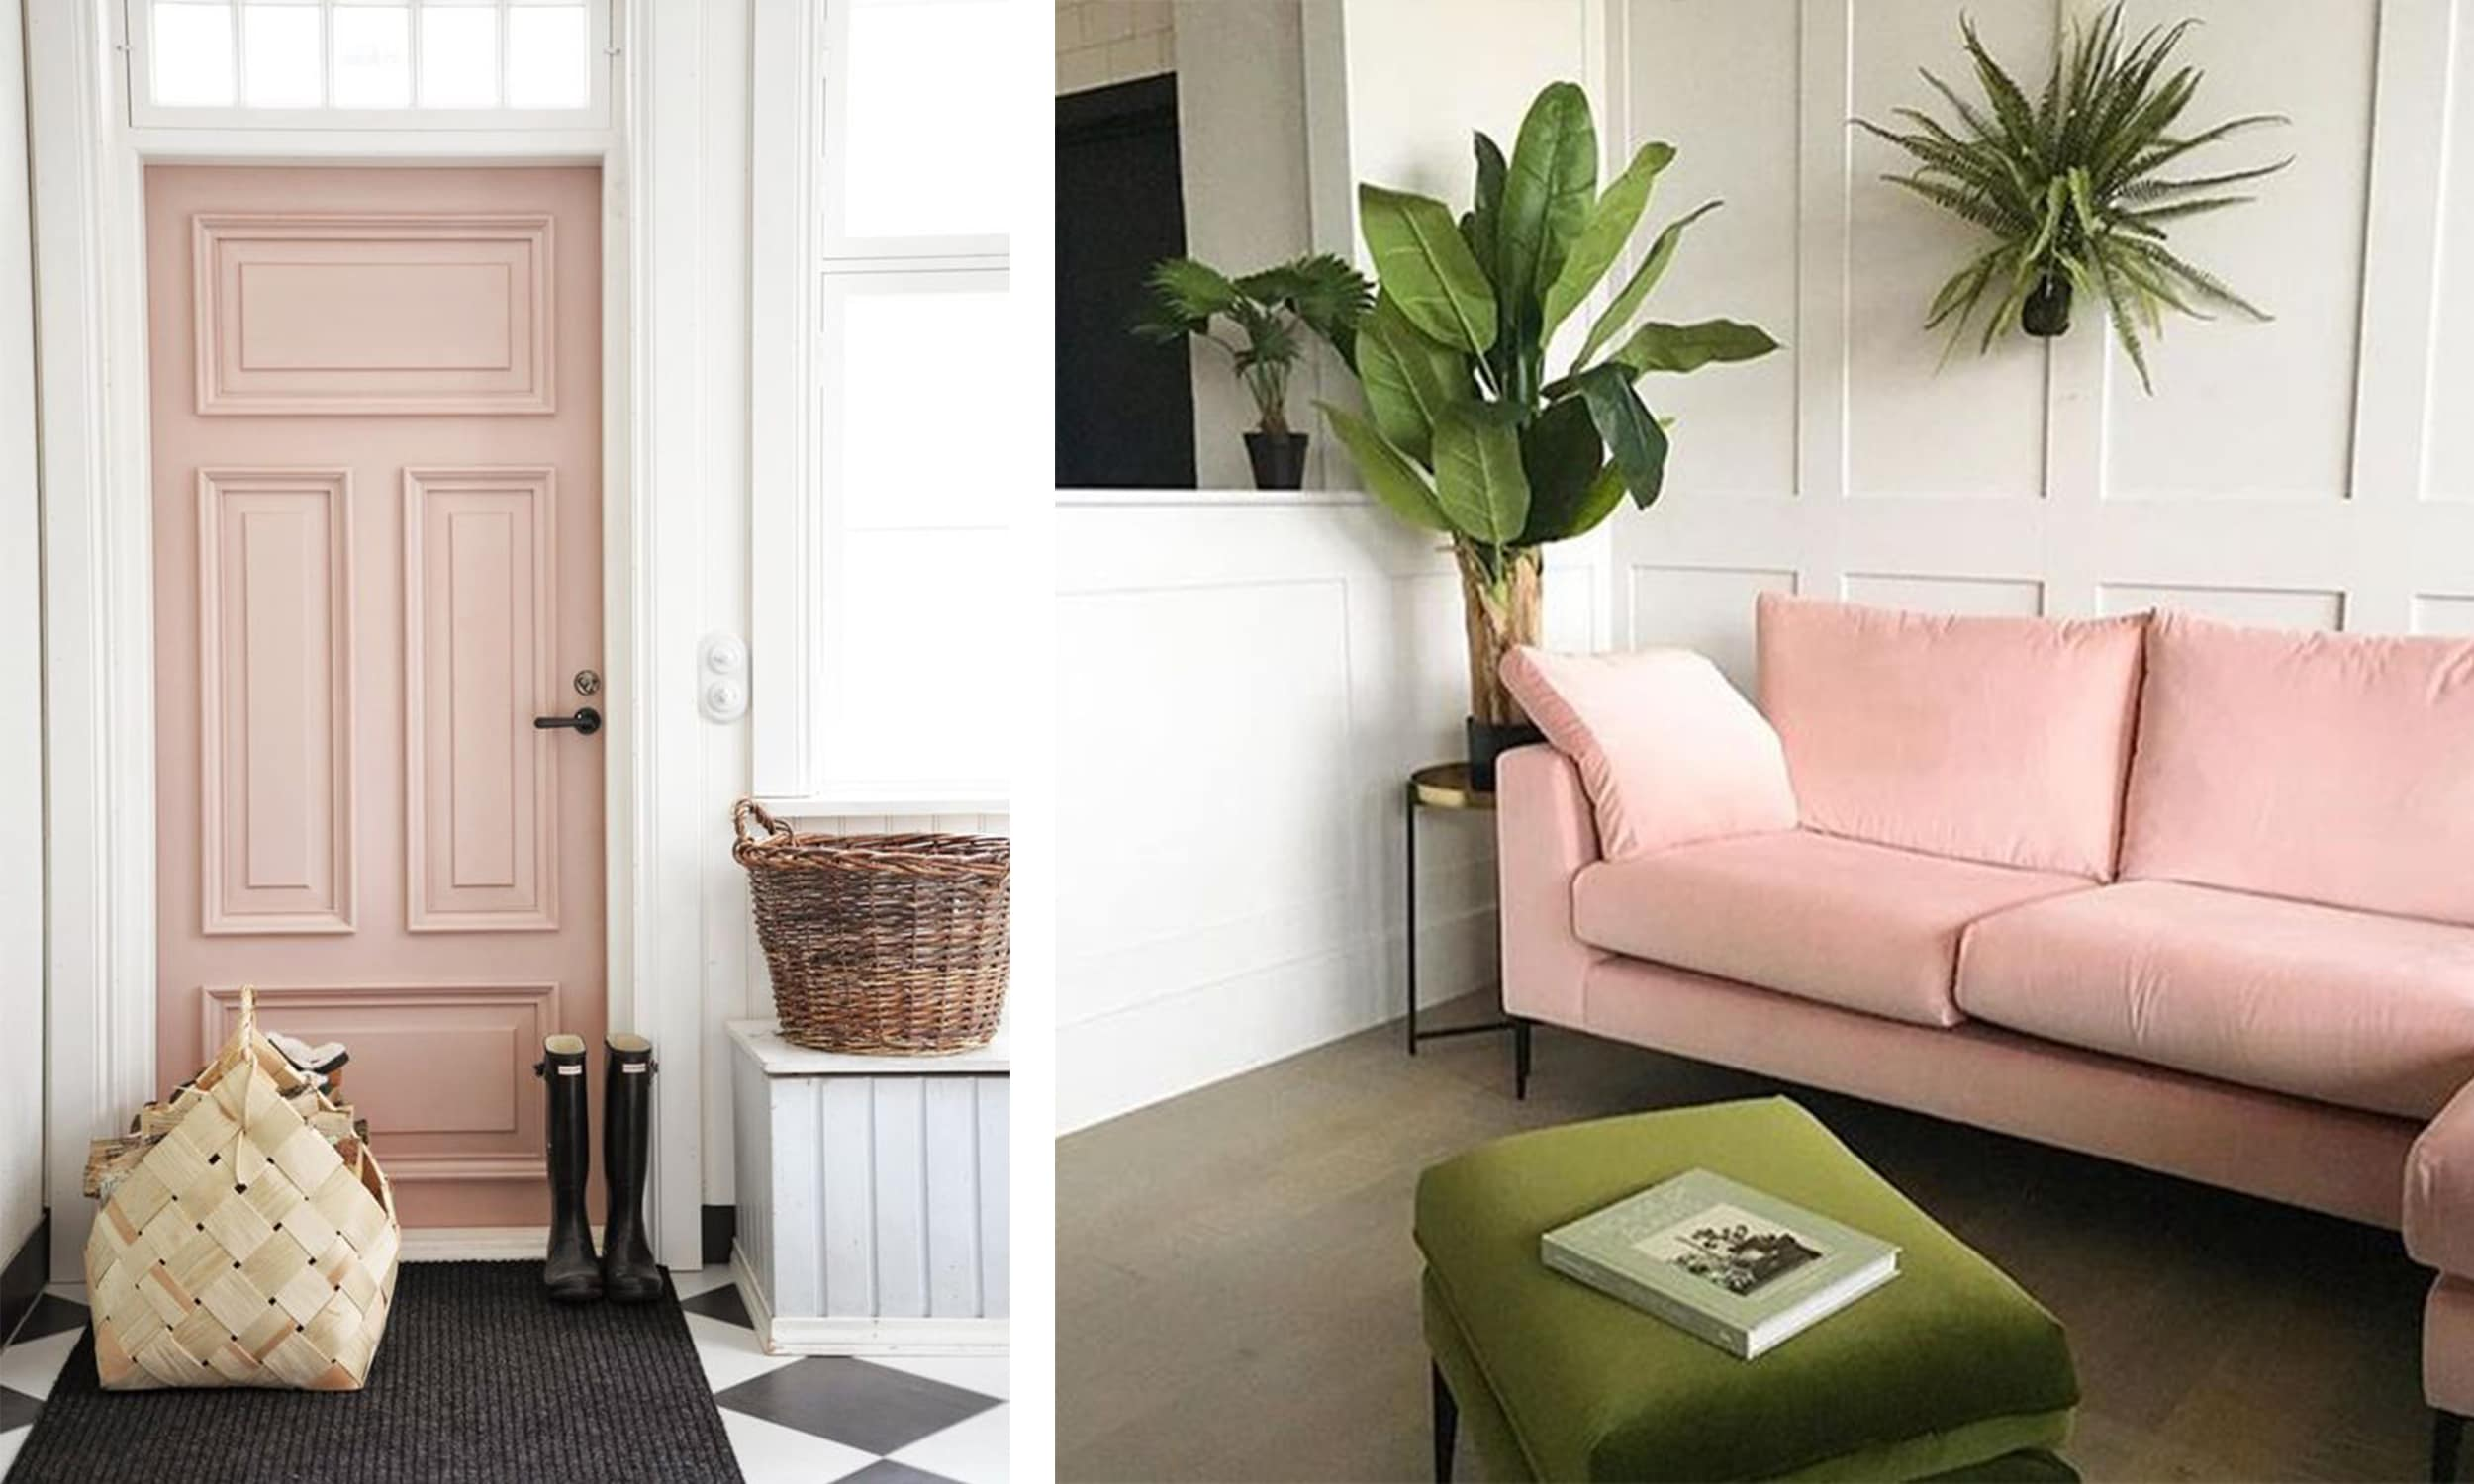 blush doorway entry and sofa with green and wicker accents